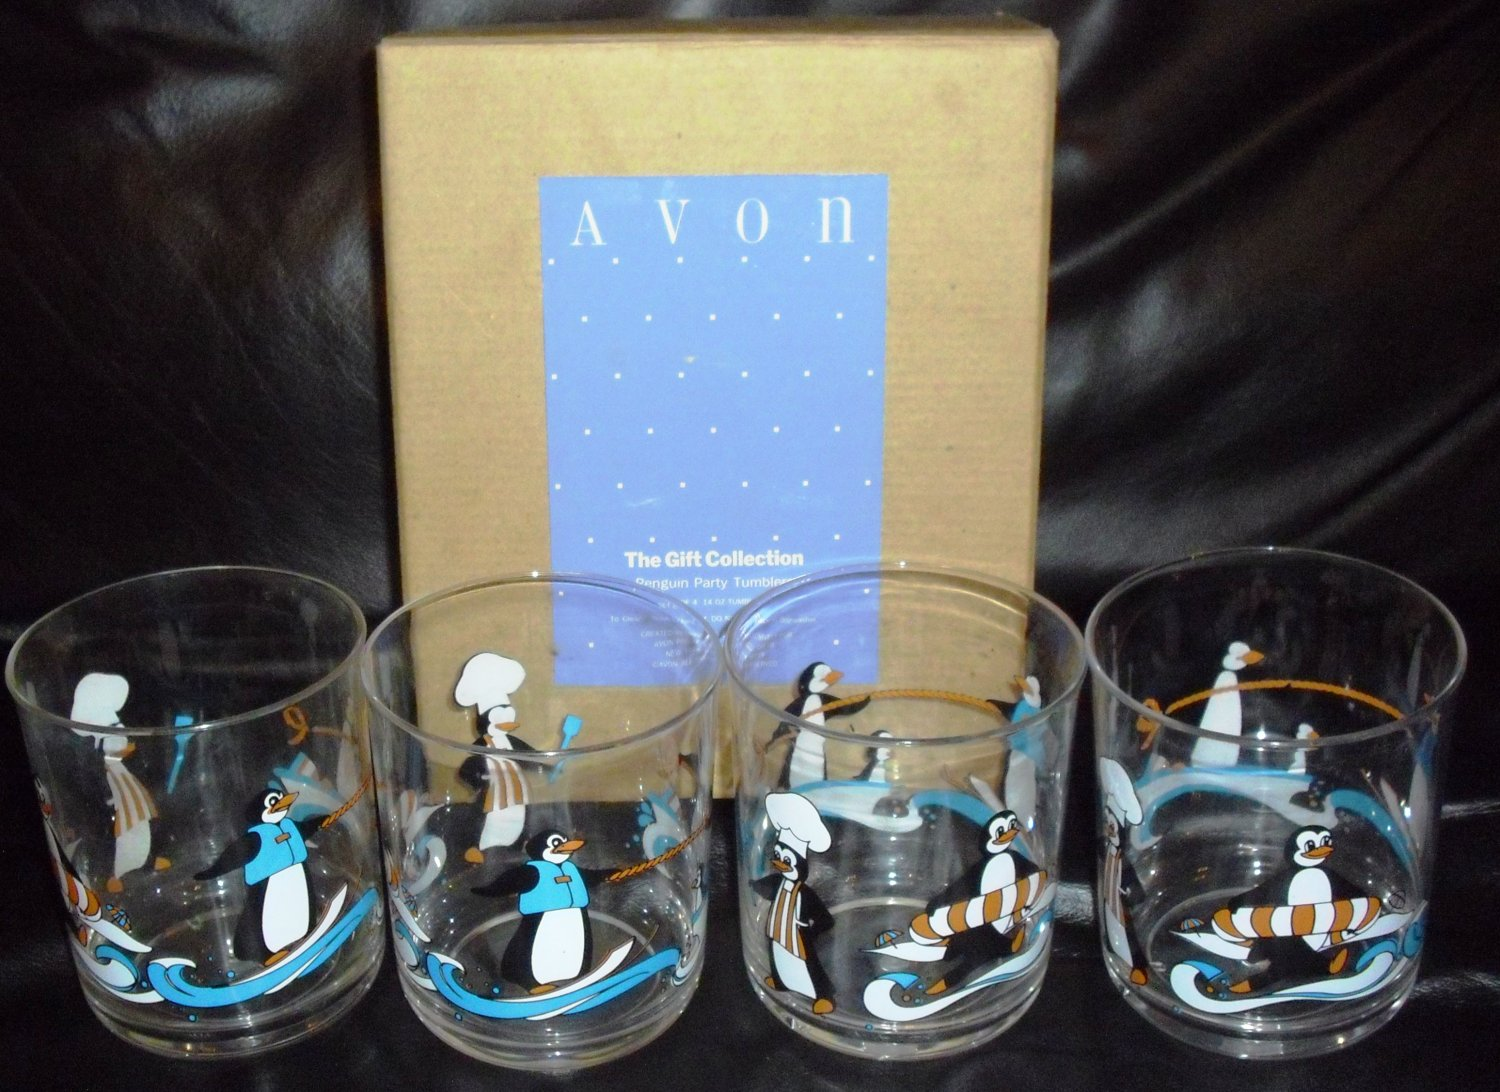 Set of 4 Penguin Party Tumblers, Avon The Gift Collection